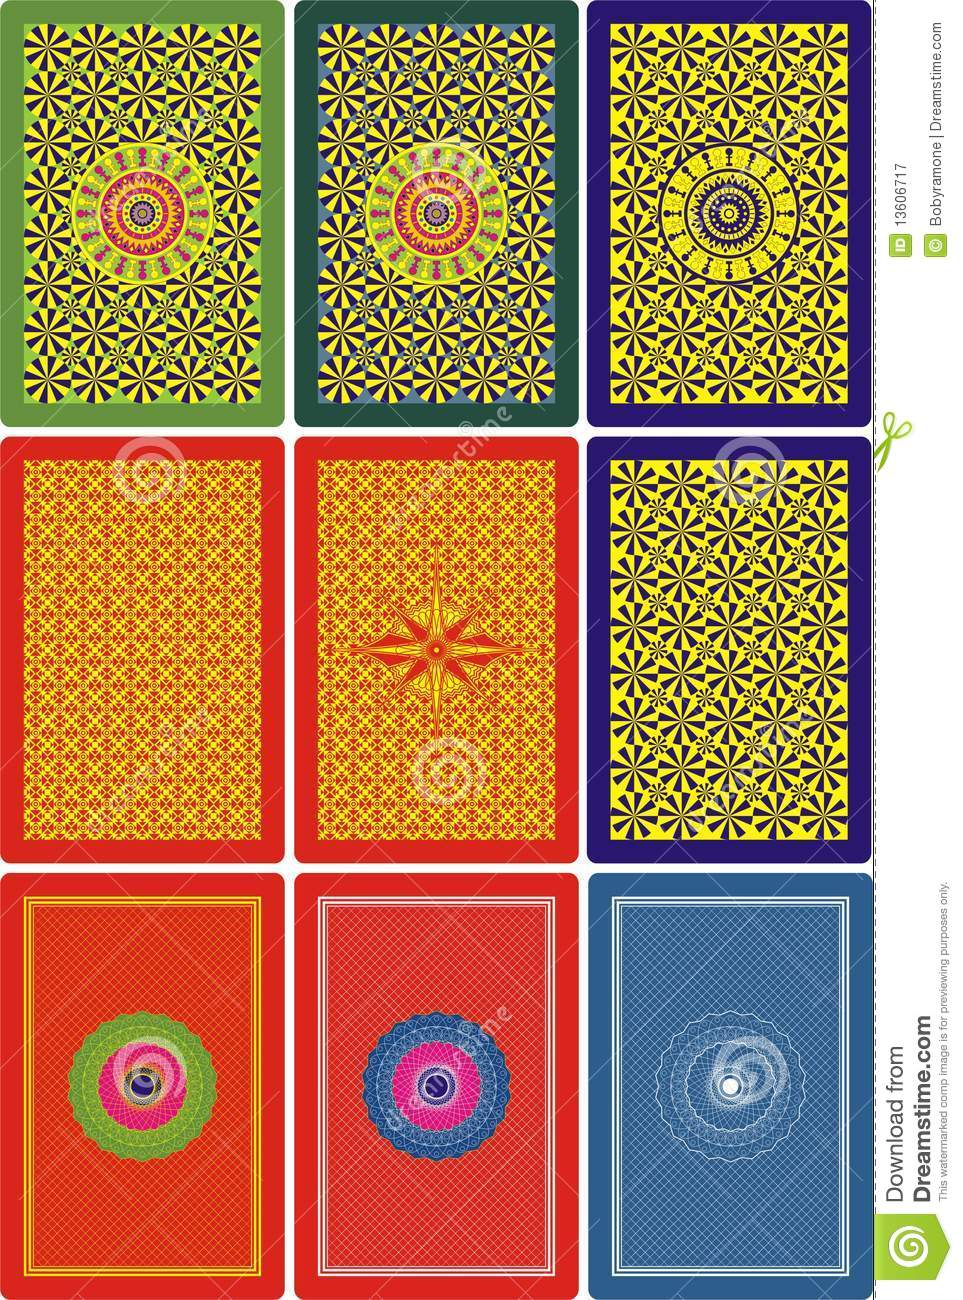 Playing Cards Back Side 60 X 90 Mm Royalty Free Stock